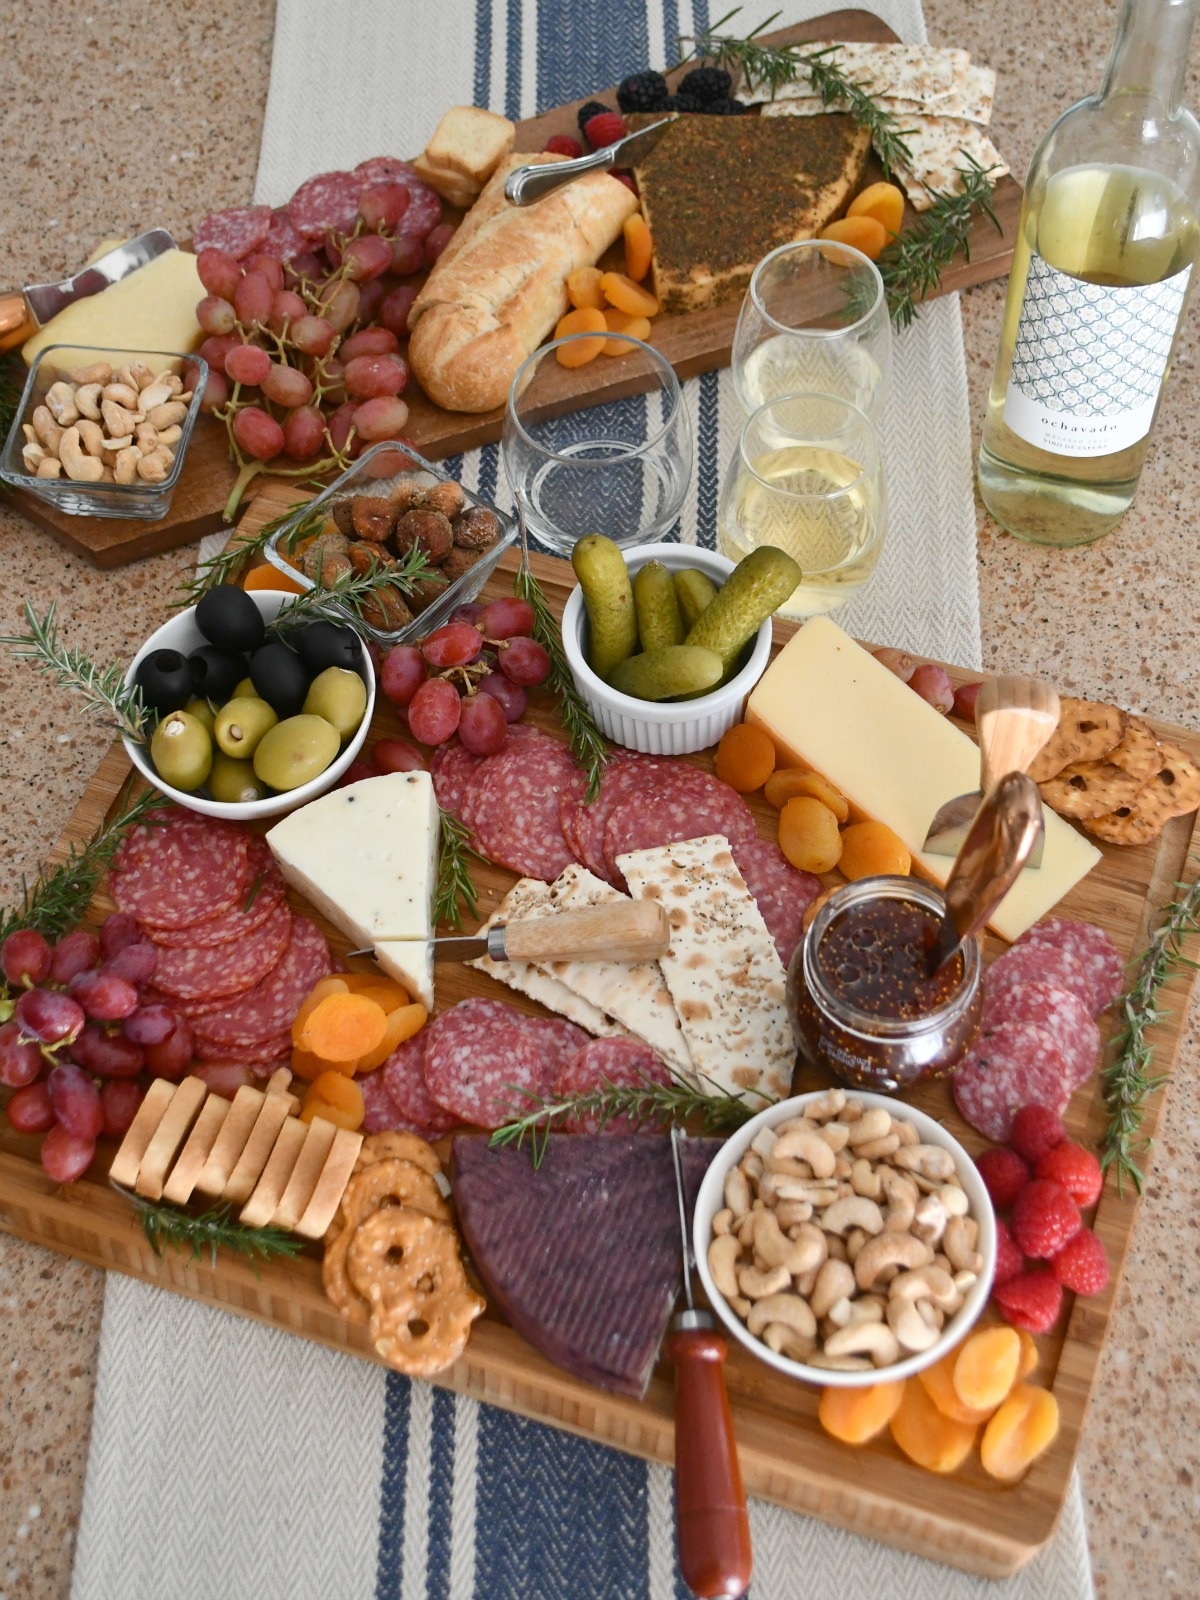 best easy charcuterie board – zoomed out boards with food, wine, a bread loaf, glasses, and more